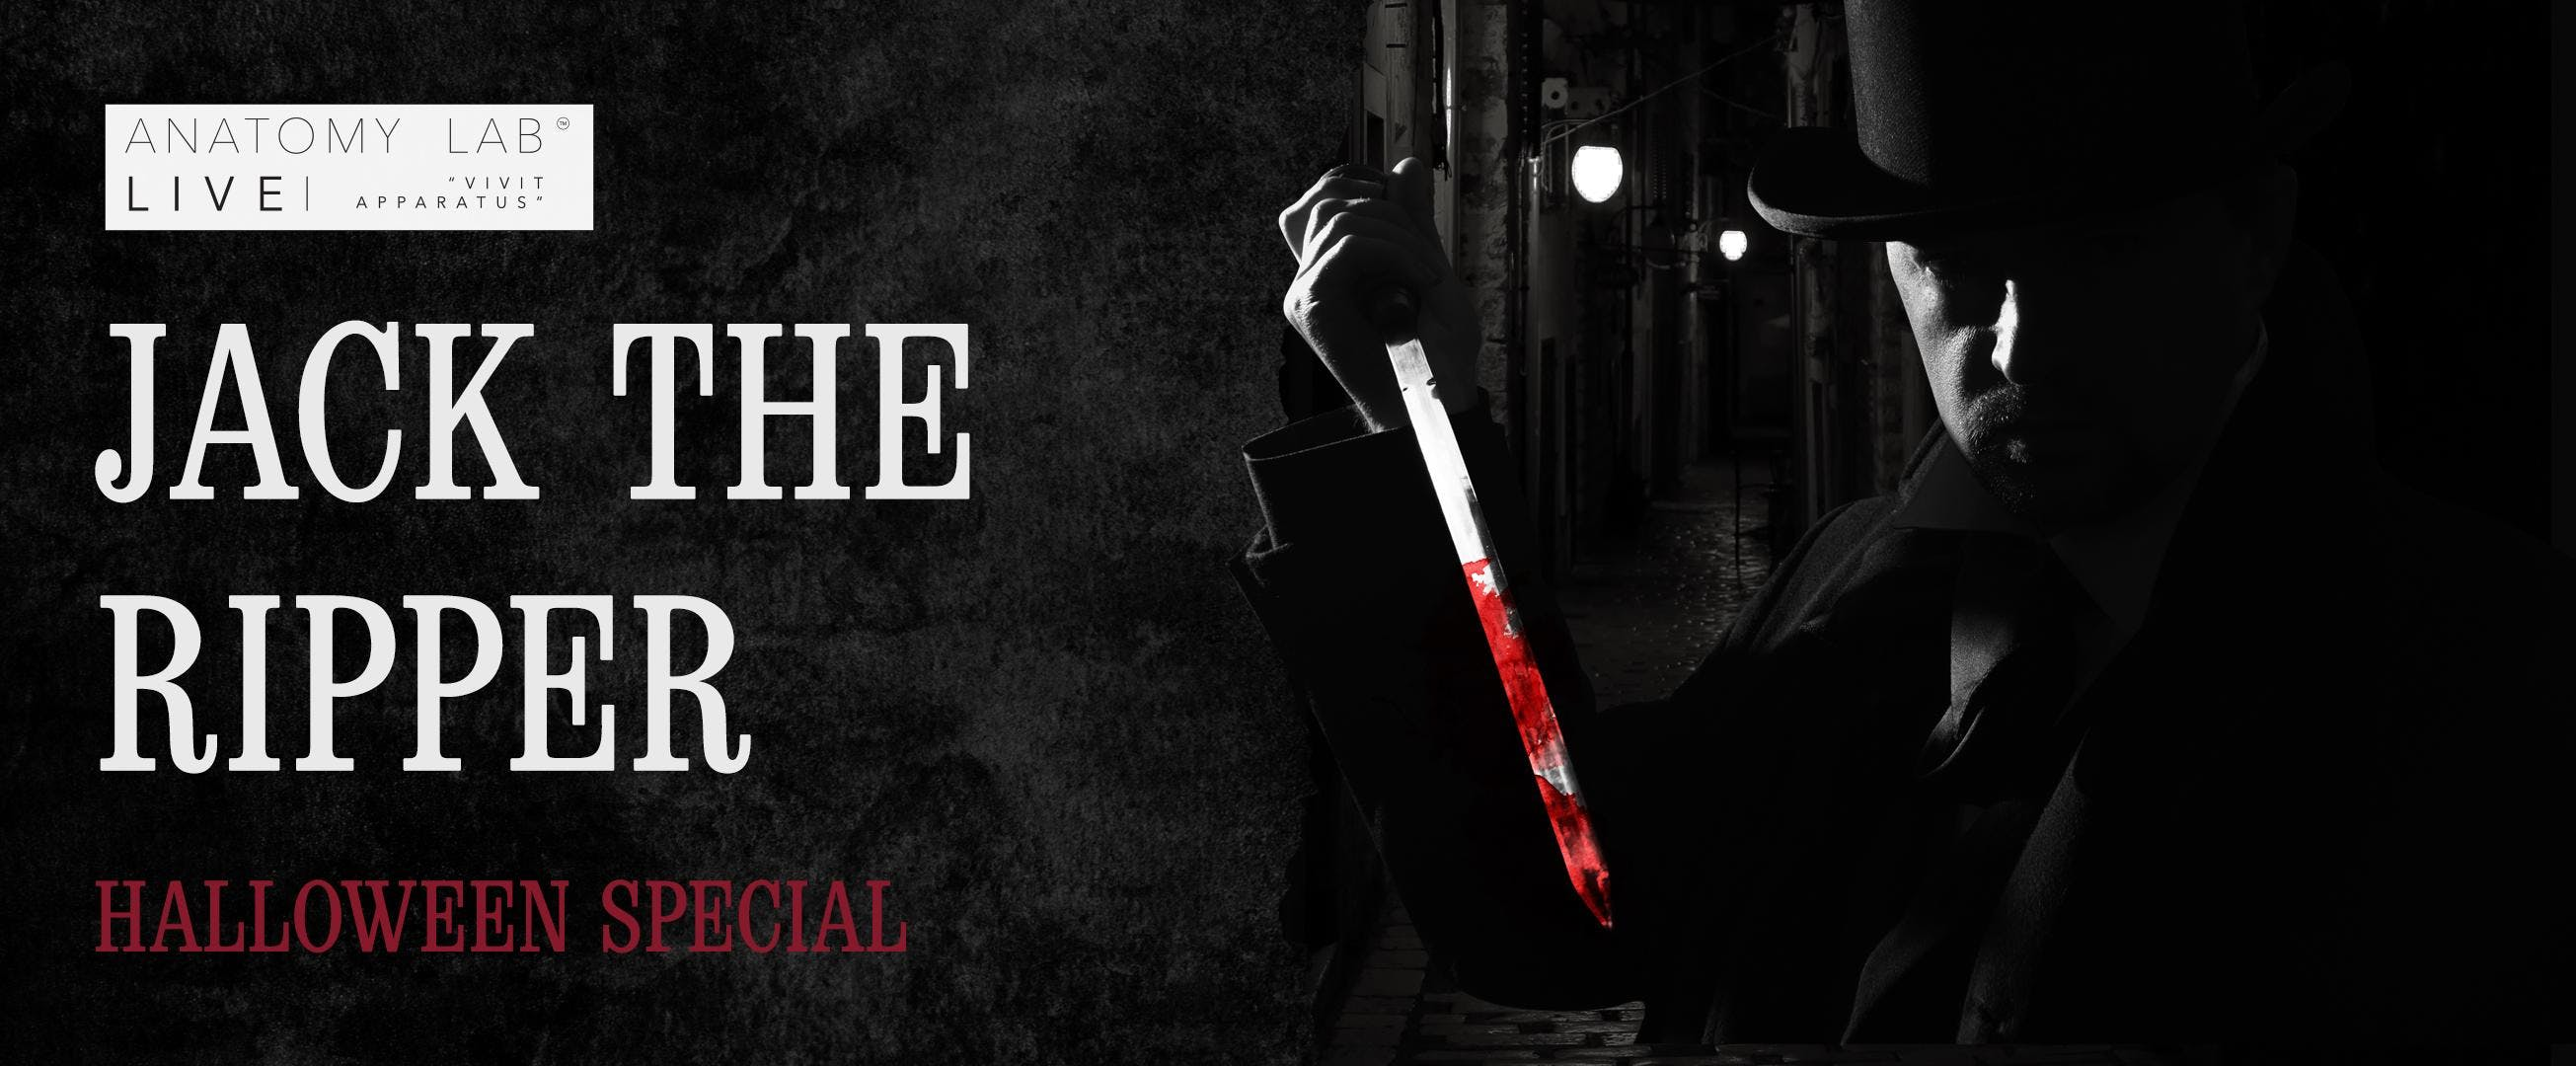 ANATOMY LAB LIVE : JACK THE RIPPER : HALLOWEEN SPECIAL | Newcastle 13/10/2019